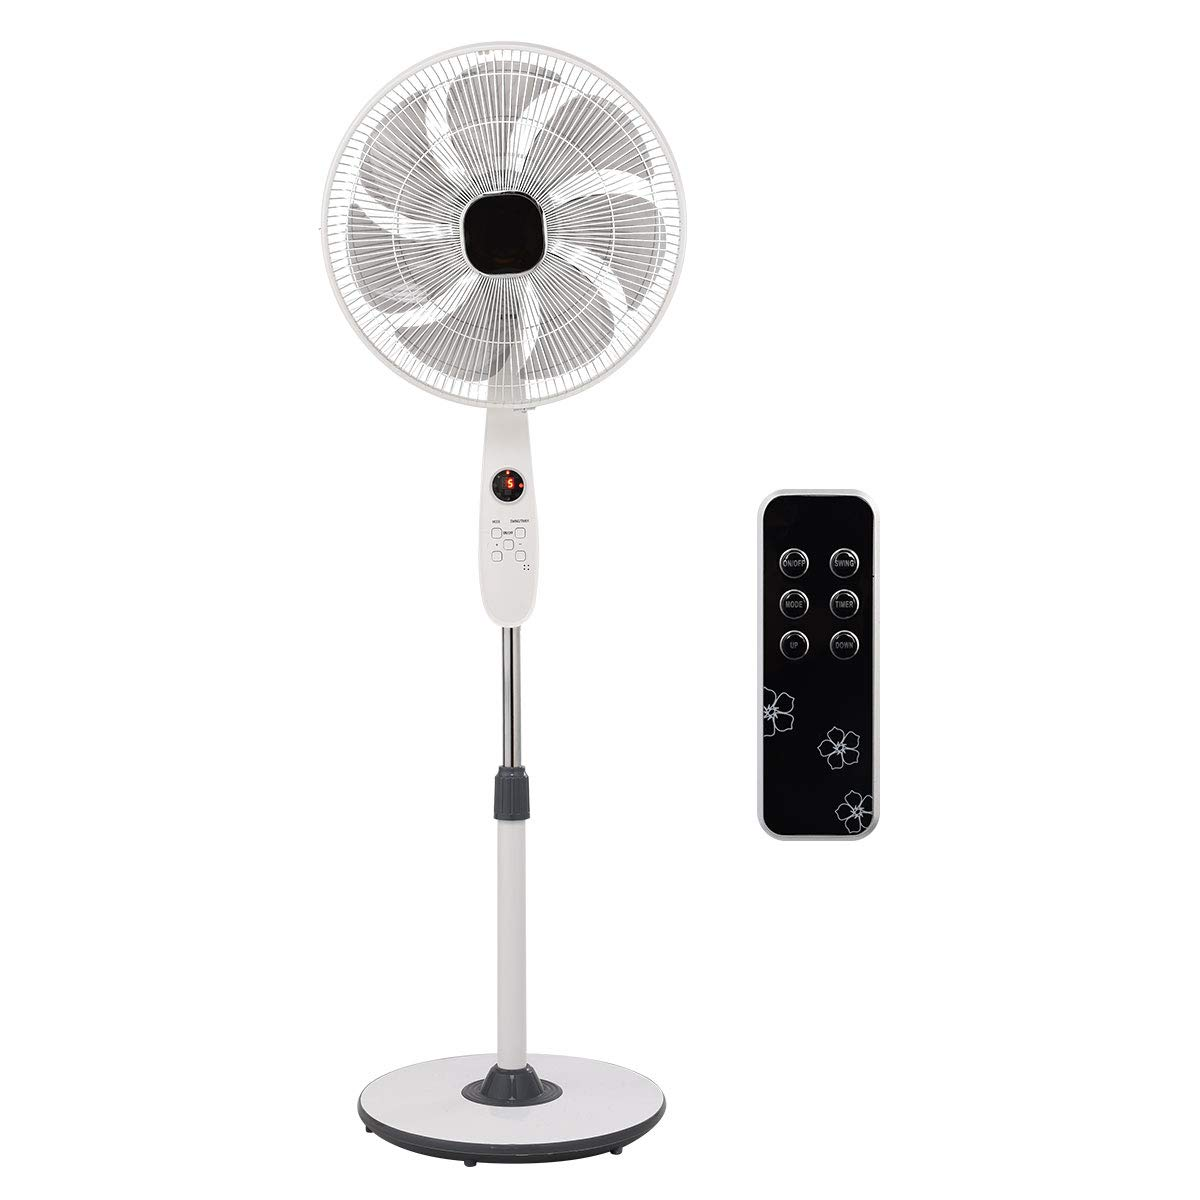 COSTWAY Pedestal Fan Adjustable 15-inch Standing Fan 3-Speed 3 Mode 5 Blades Oscillating Stand Fan with Remote Control for Home and Office White 15